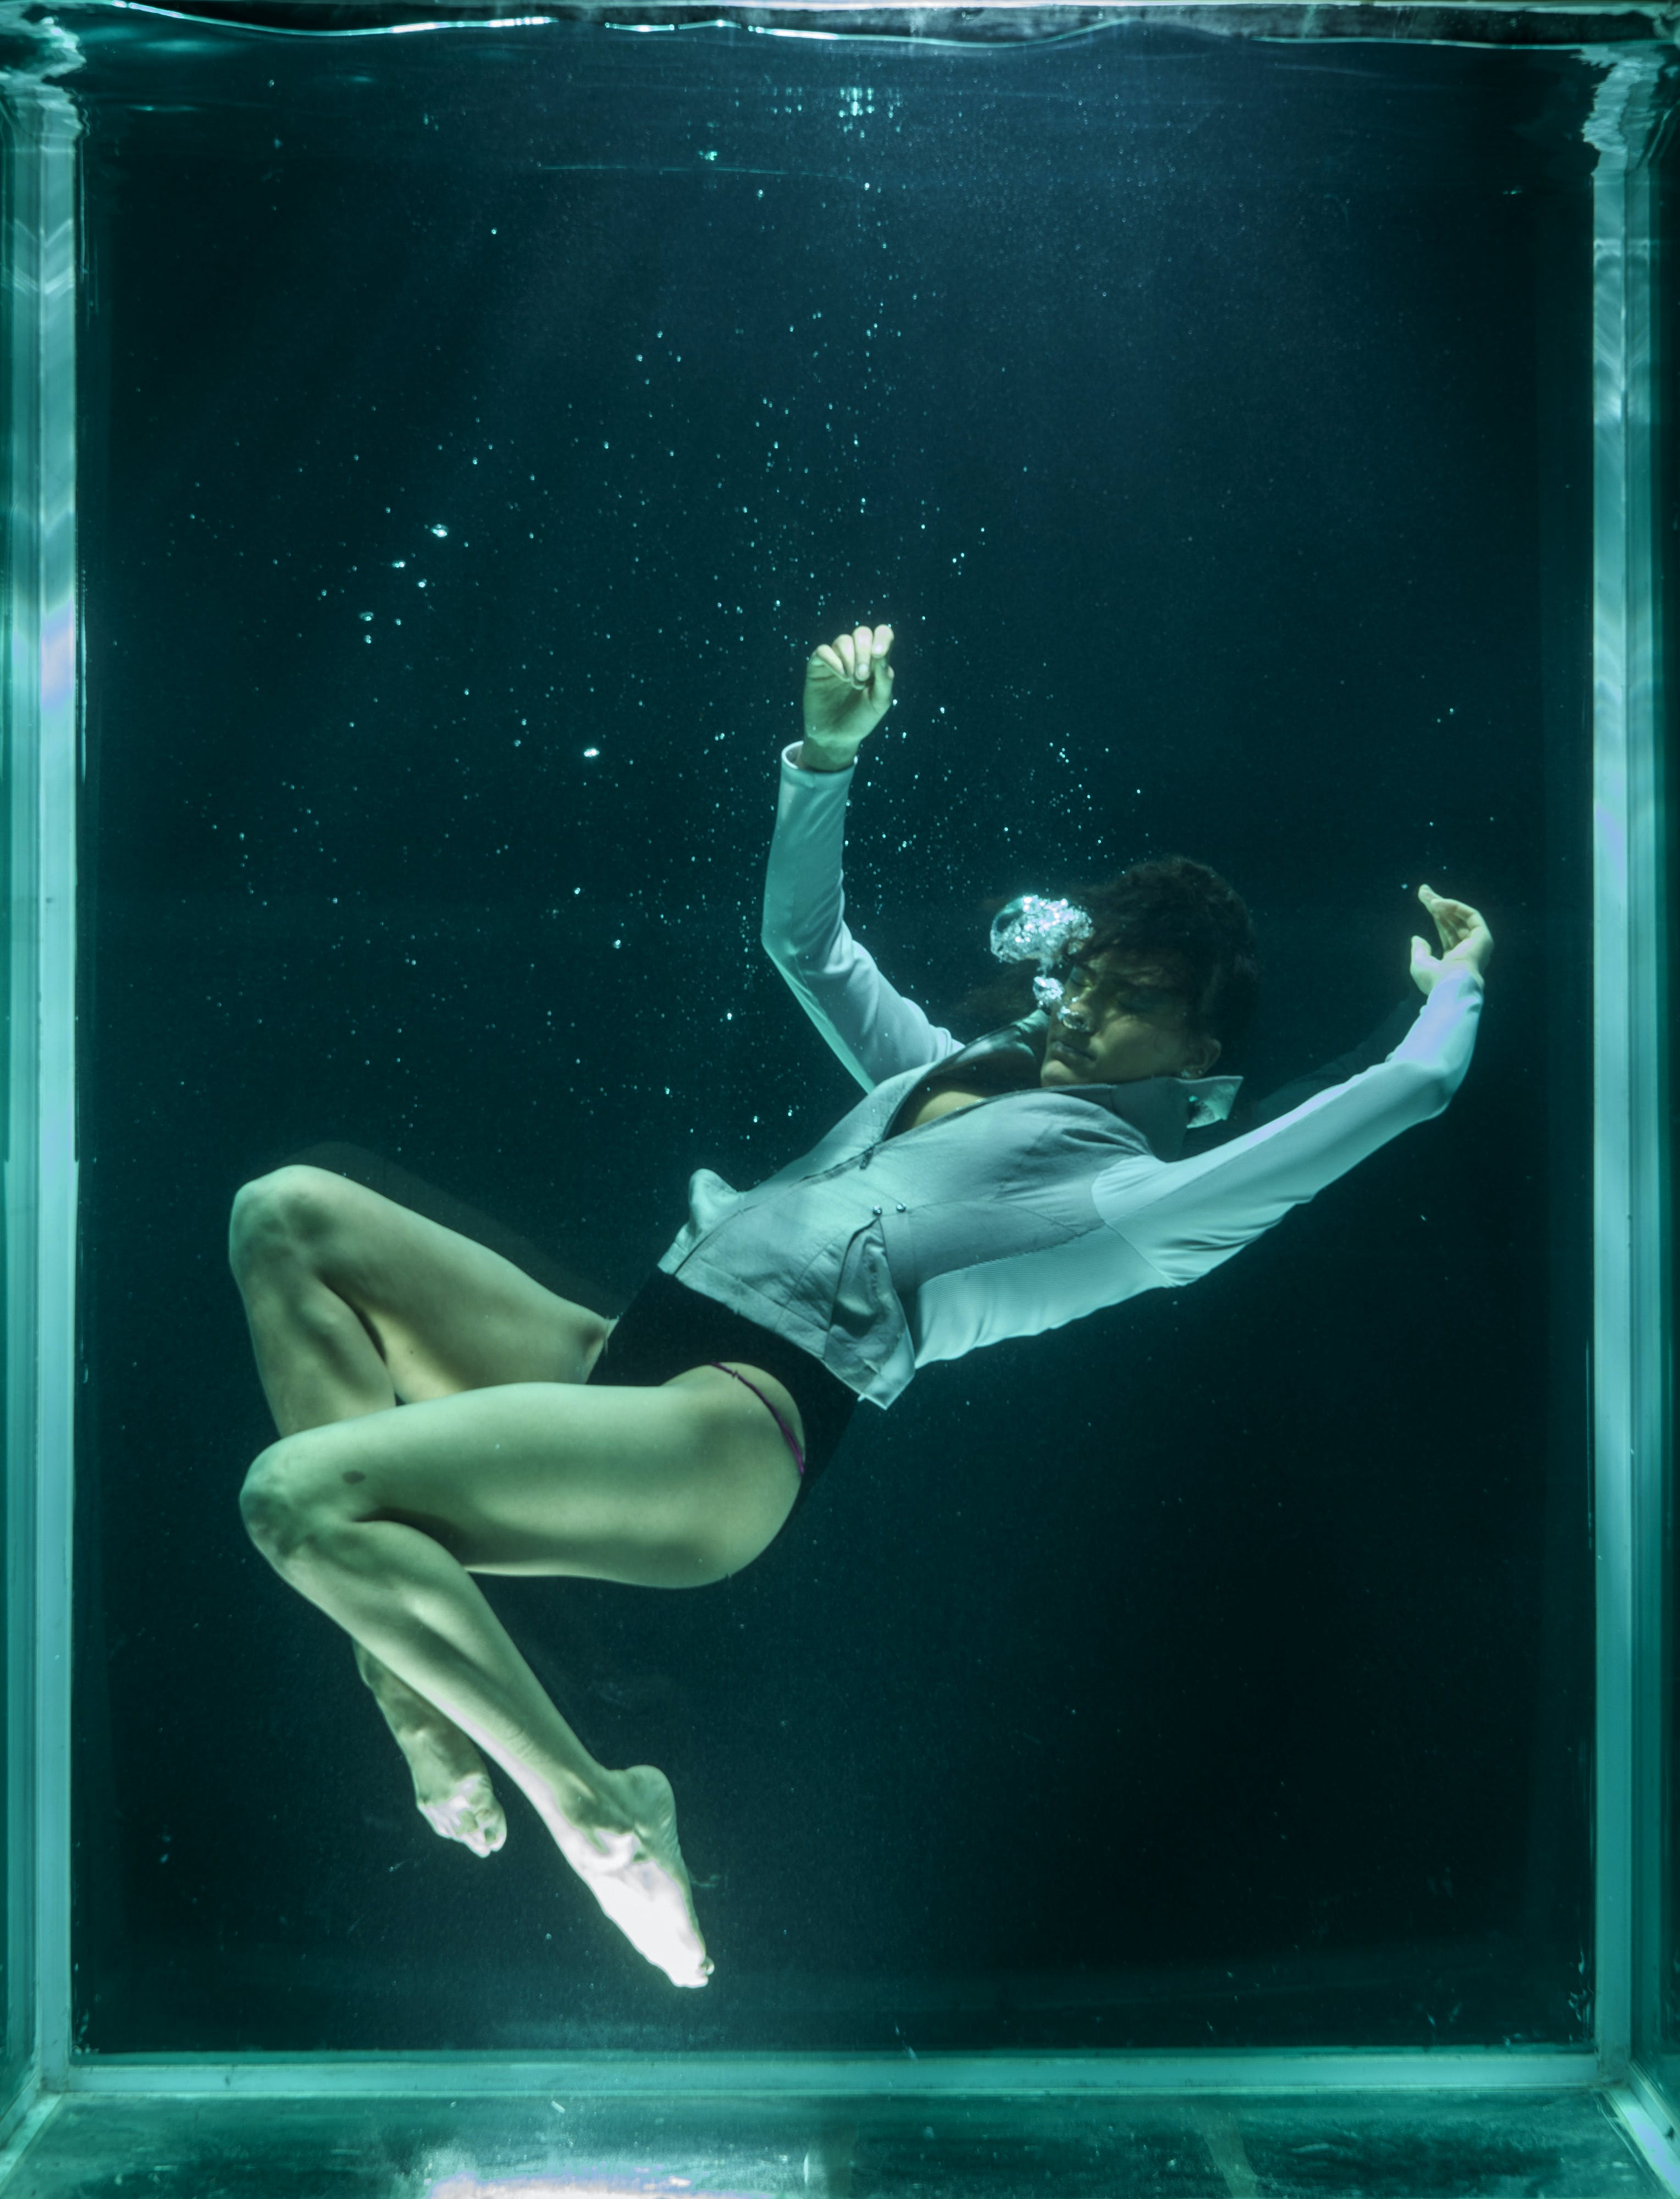 Person Wearing White Long-sleeved Shirt in Underwater